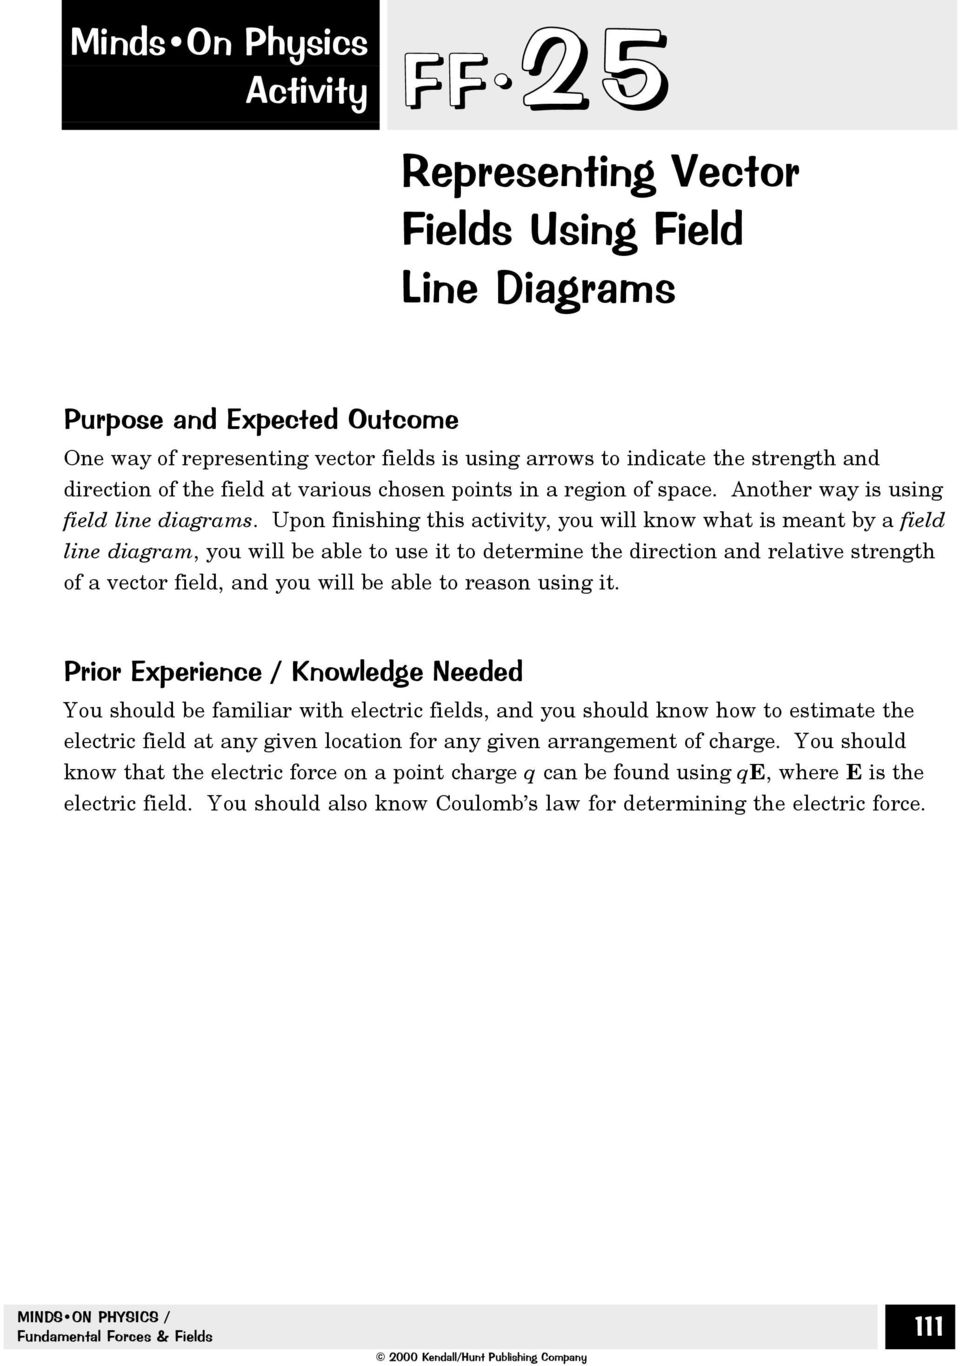 Representing Vector Fields Using Field Line Diagrams Pdf Force Upon Finishing This Activity You Will Know What Is Meant By A Diagram